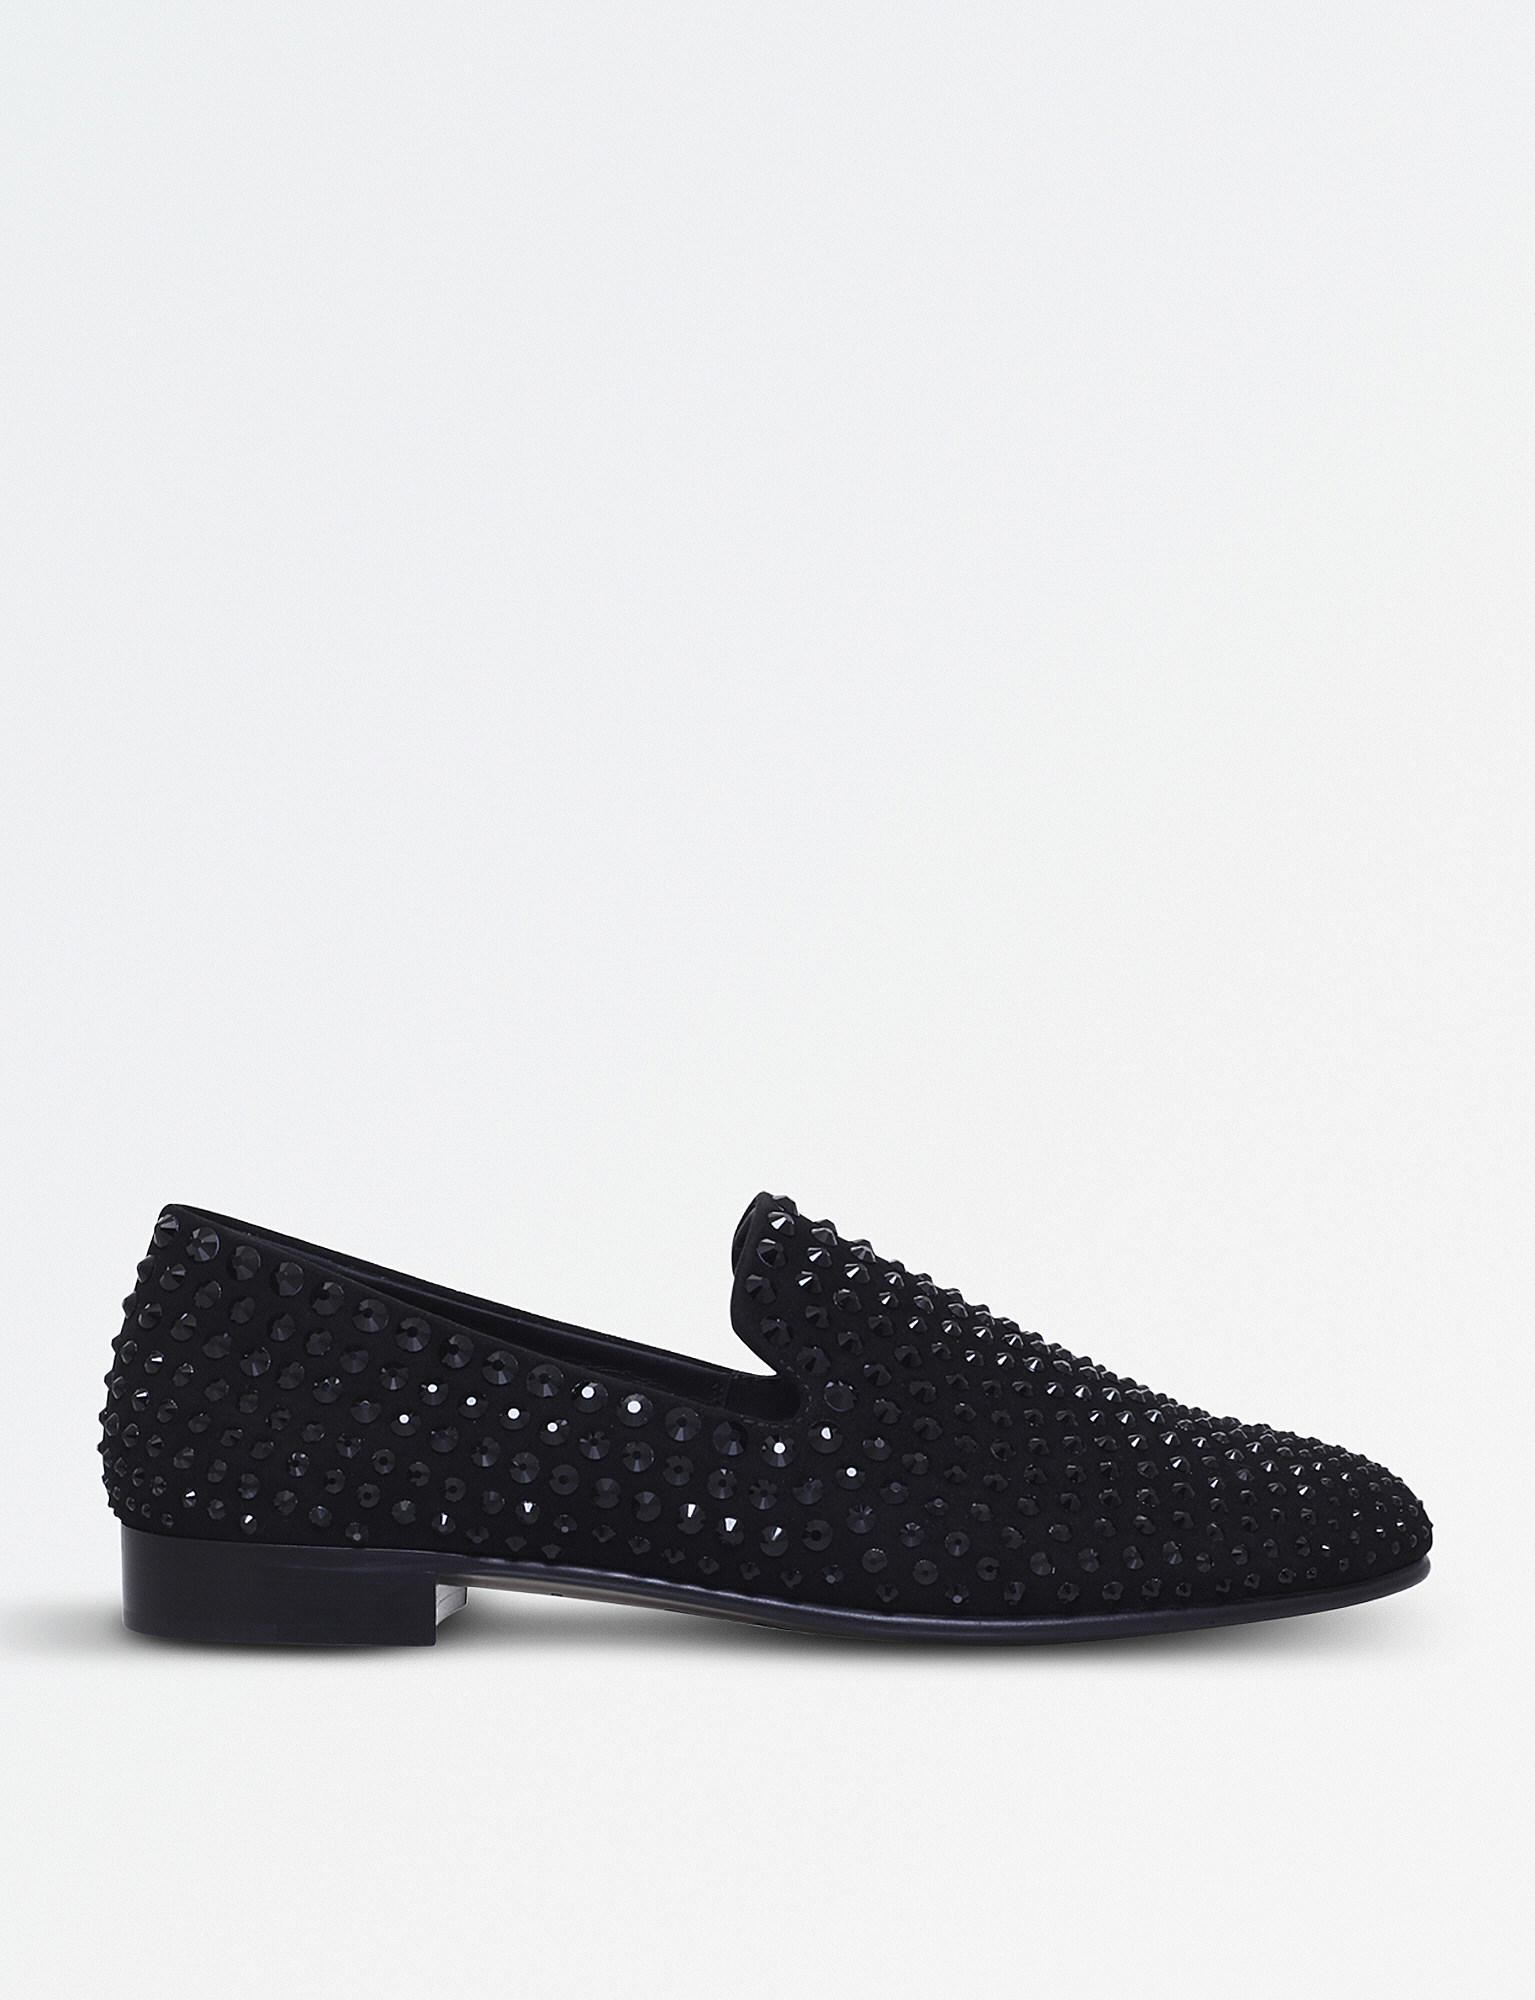 Giuseppe Zanotti Embellished Suede Loafers lowest price cheap online f5iaLTbM